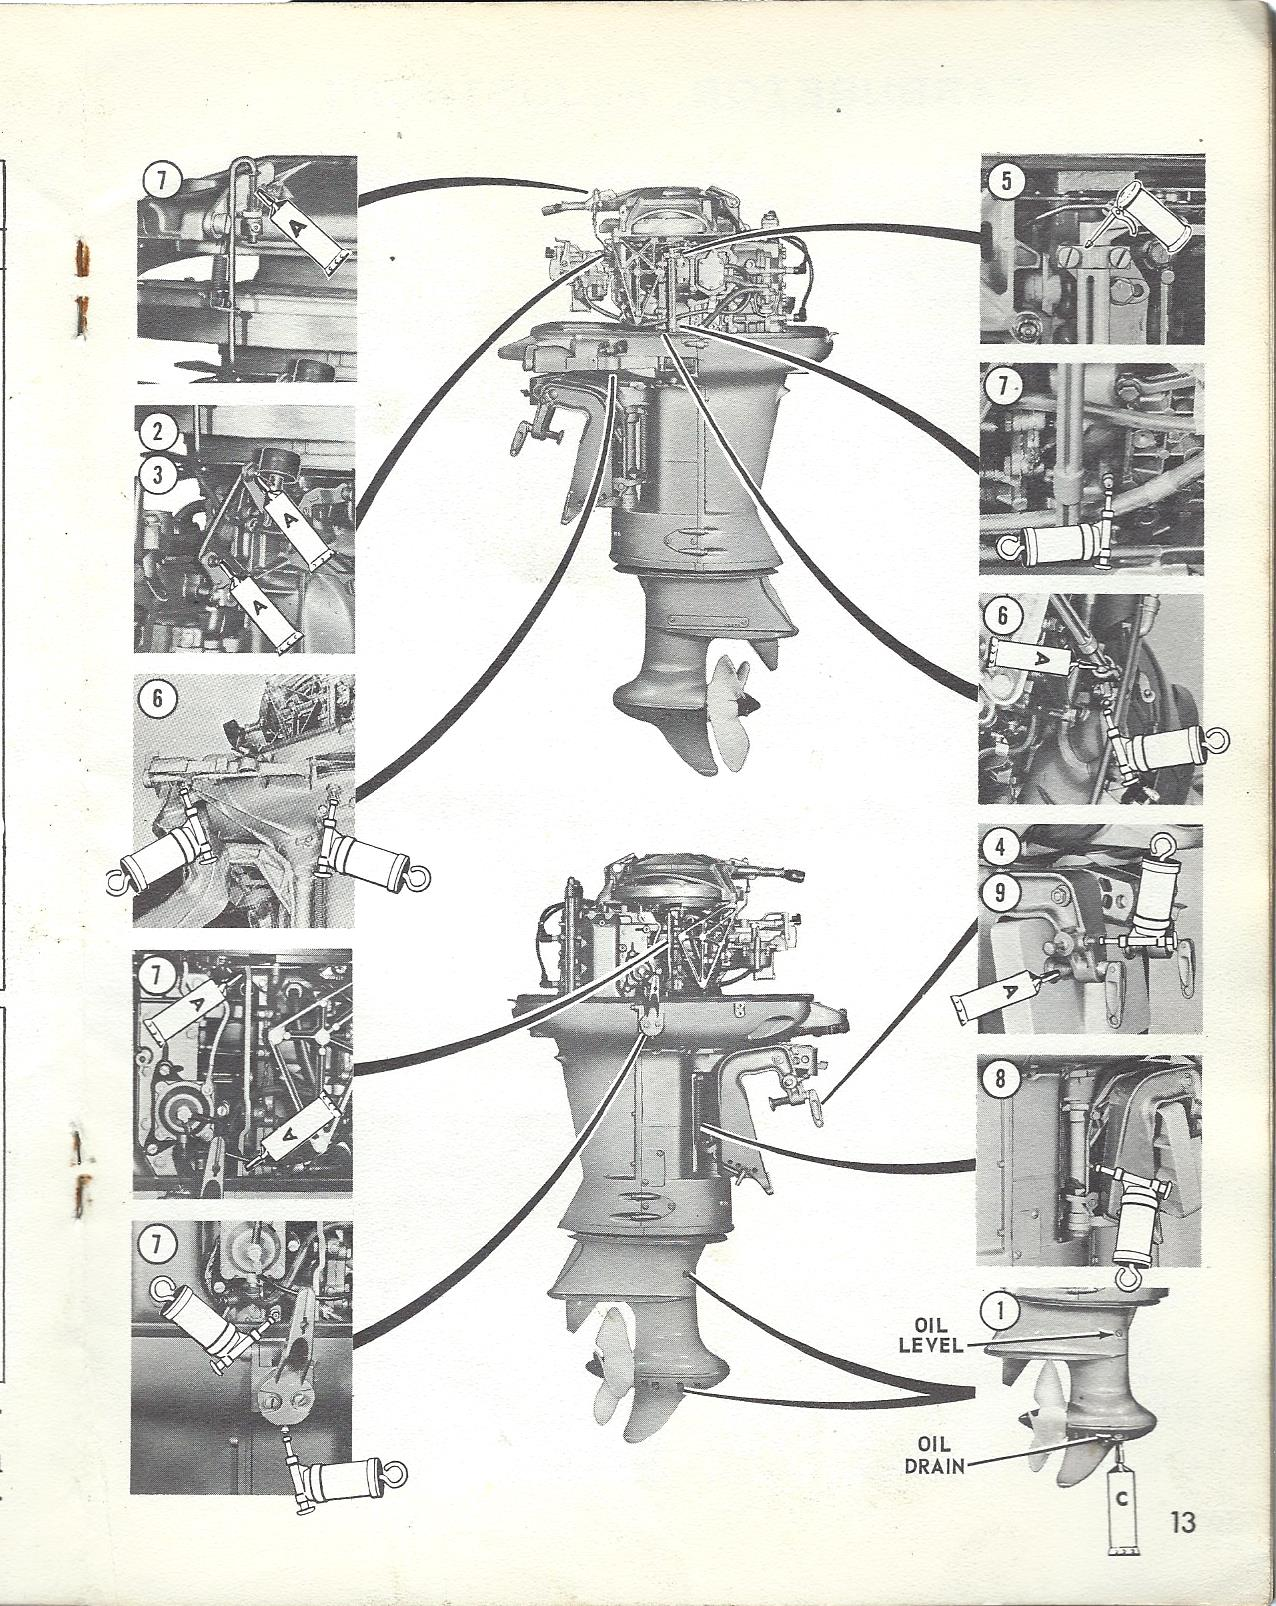 Evinrude Owners manual 1964 40HP Big Twin Model 40402 and 40403 - OUTBOARD  MANUALS.netThe Outboard Manual Library